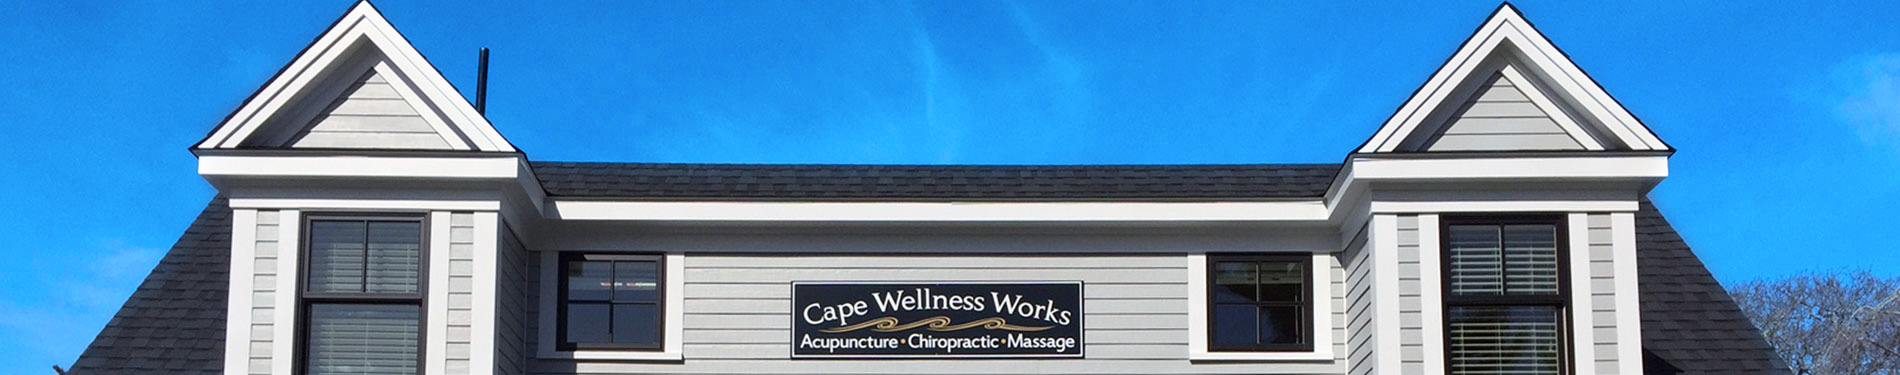 Cape Wellness Works location